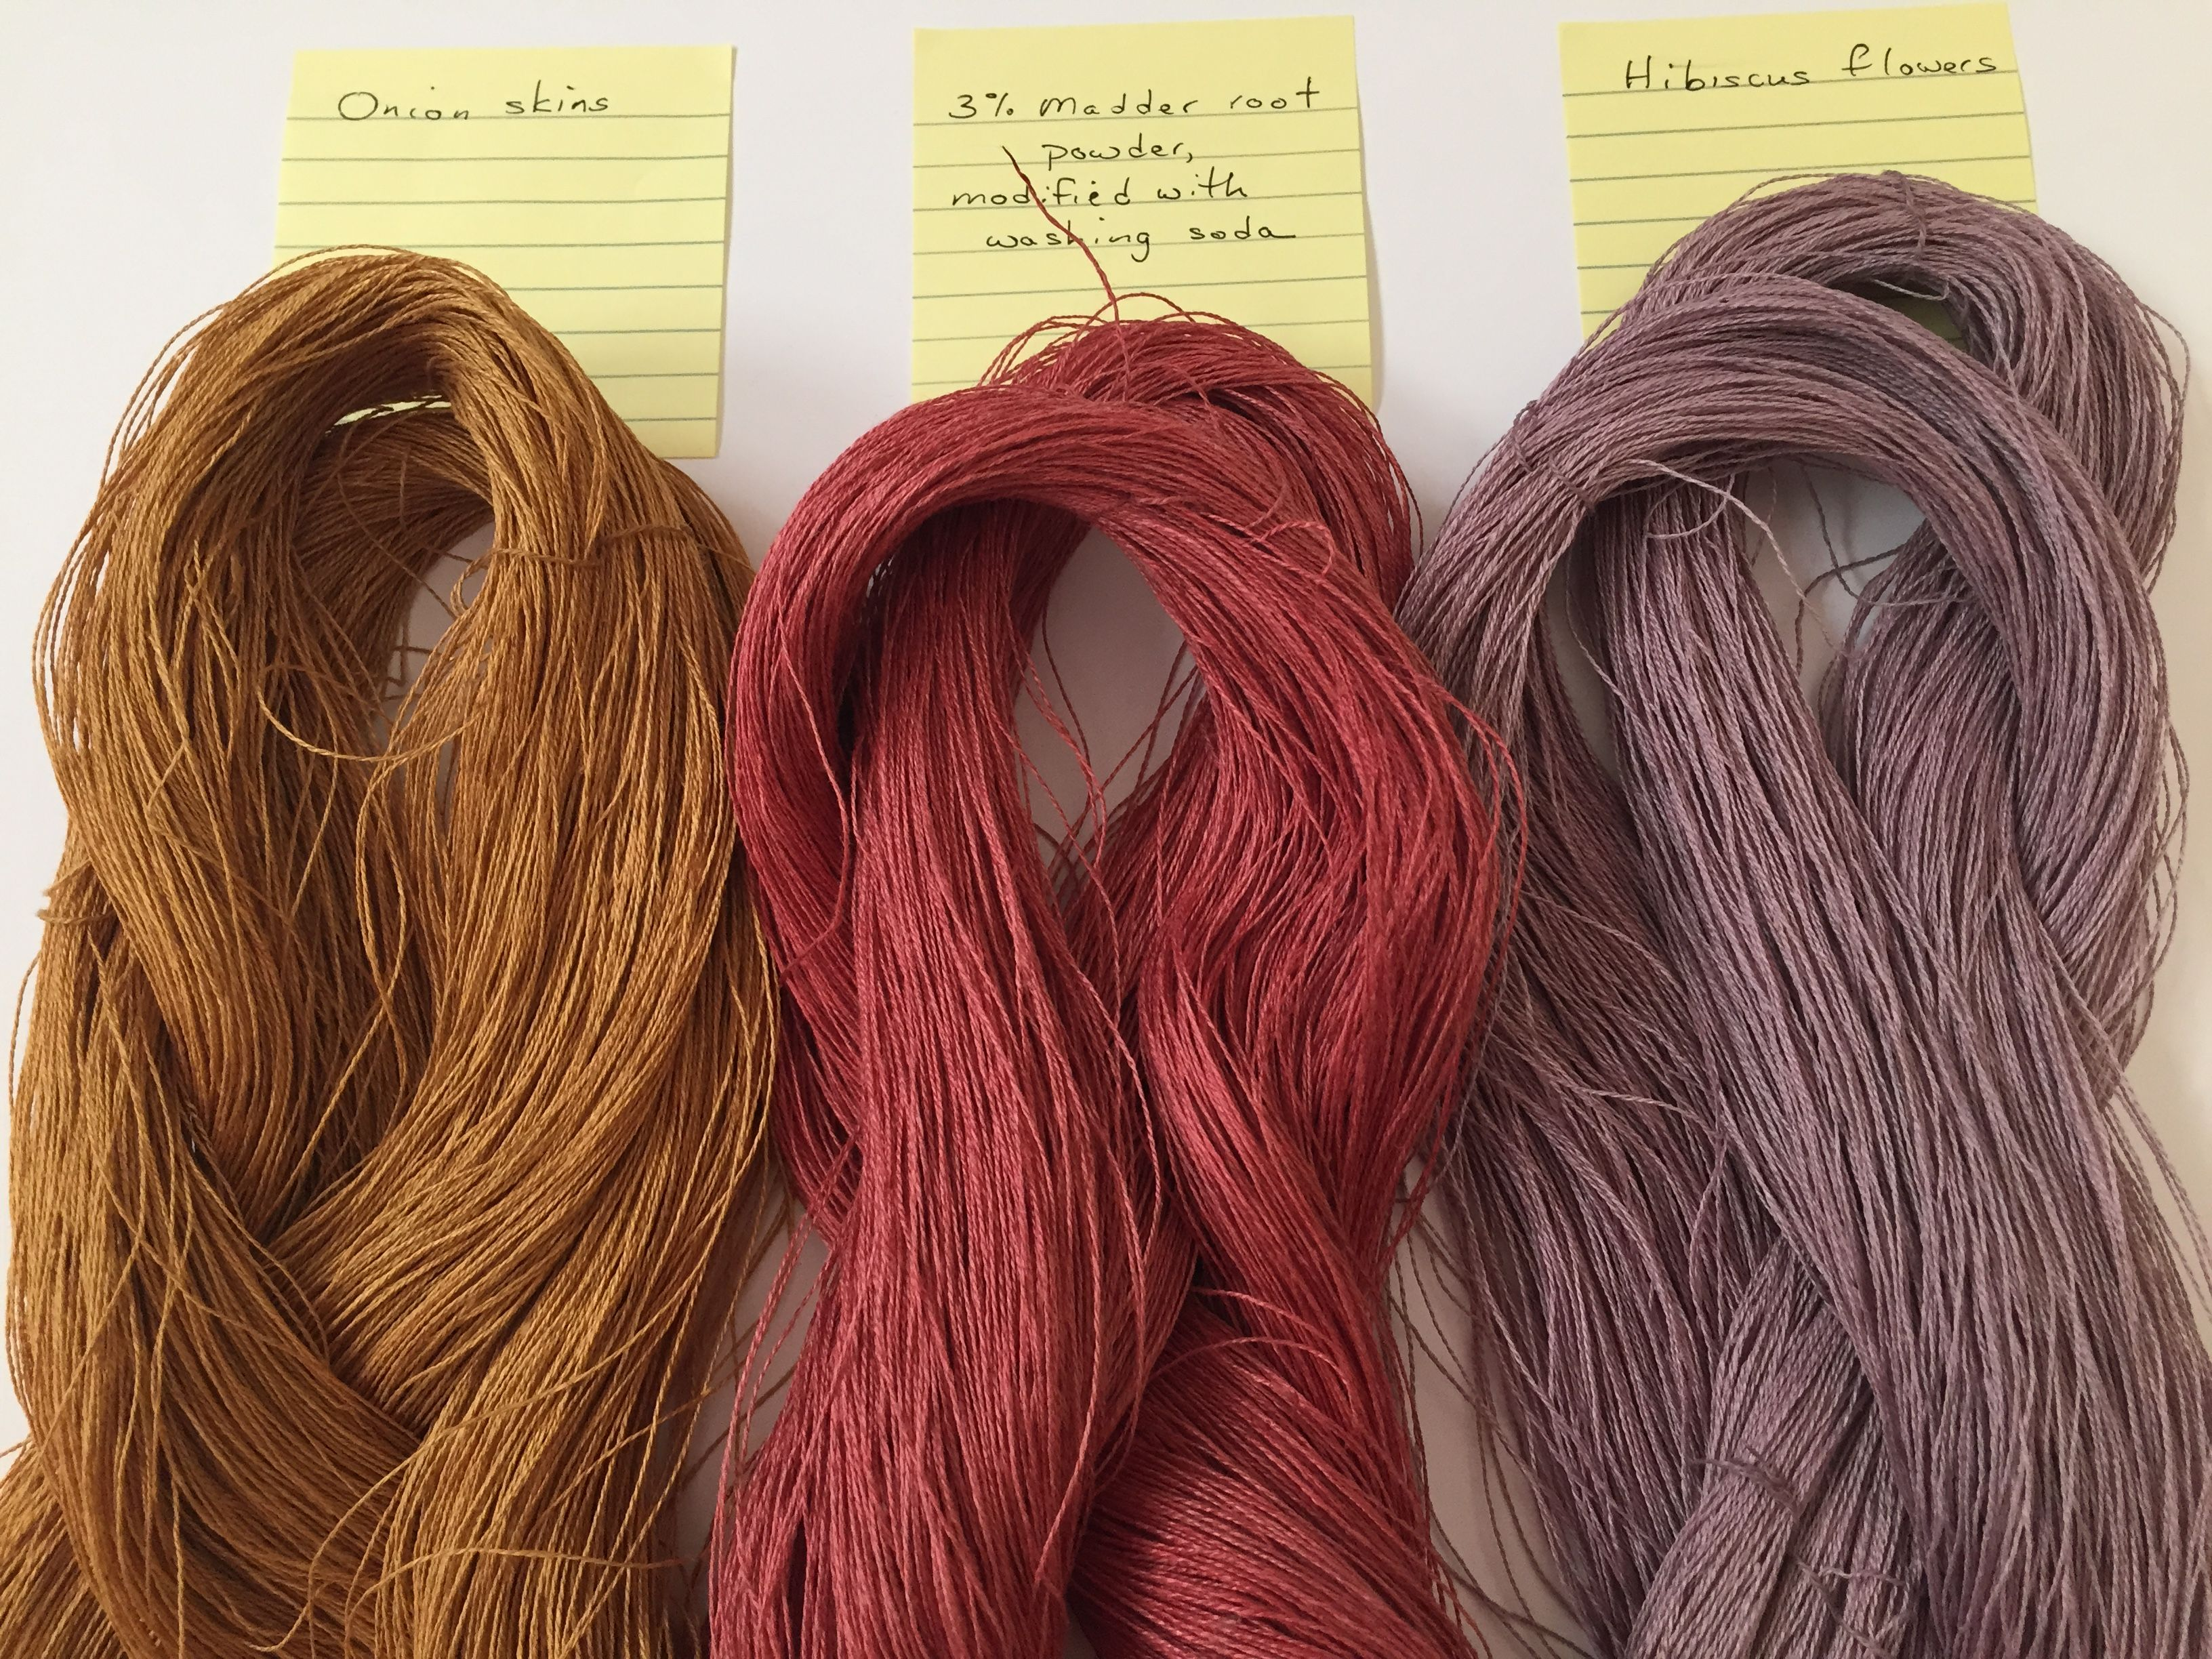 Barbara Pickel Linen Yarn Dyed With Onion Skins Madder